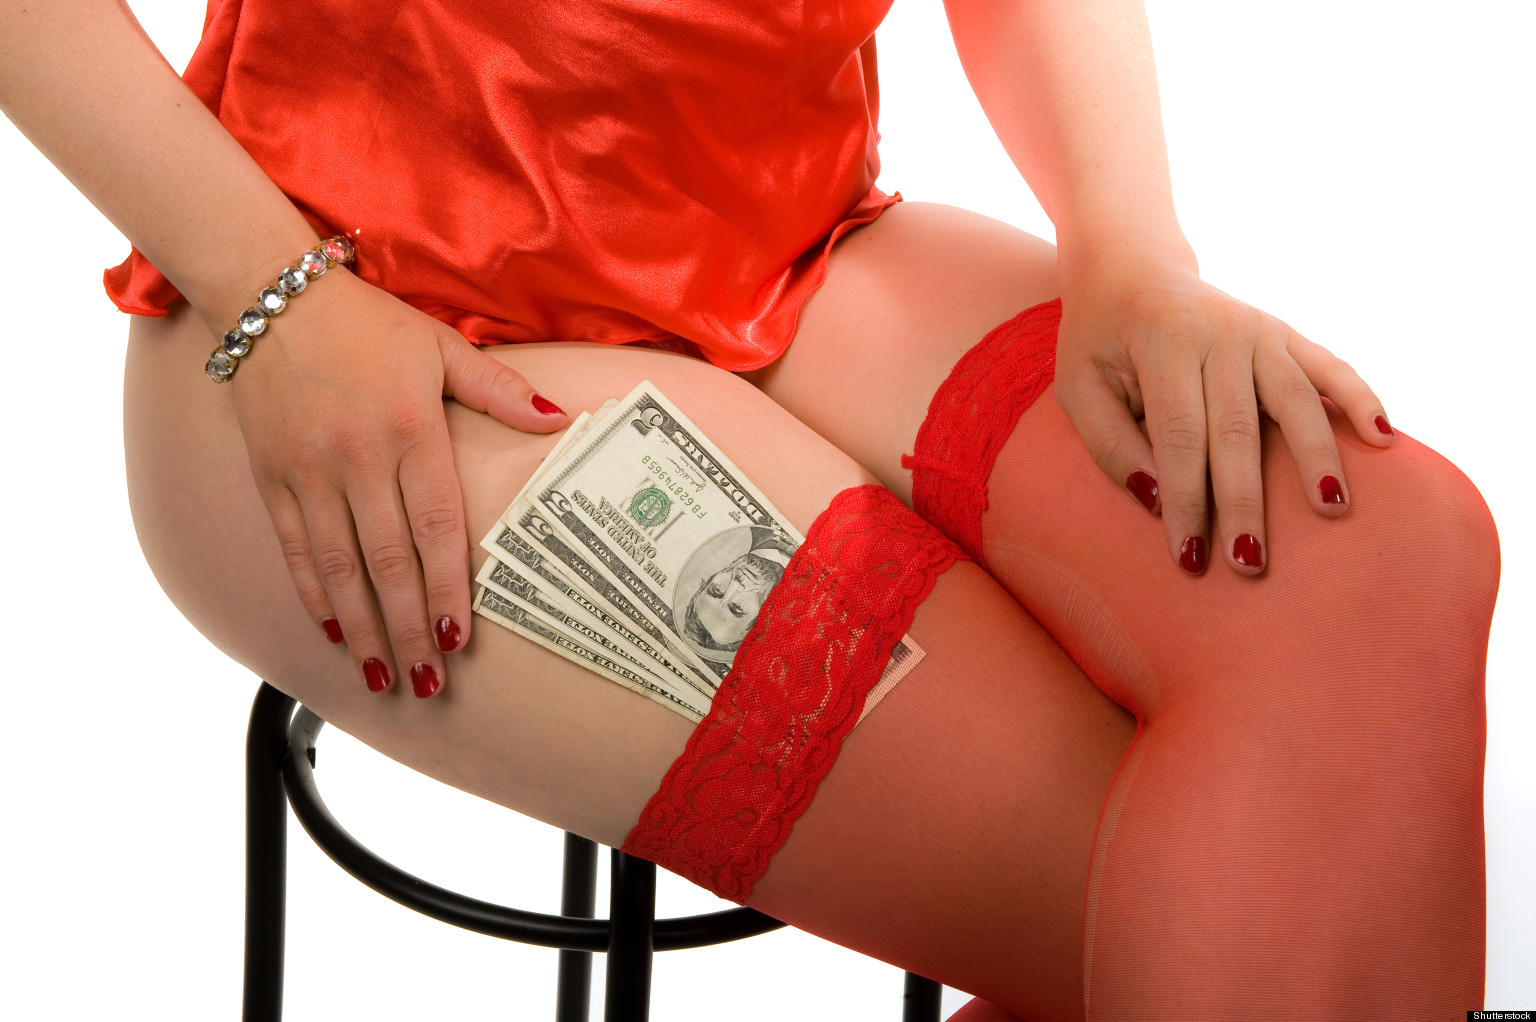 LinkedIn Clarifies Its Ban On Prostitutes, And Yes, There